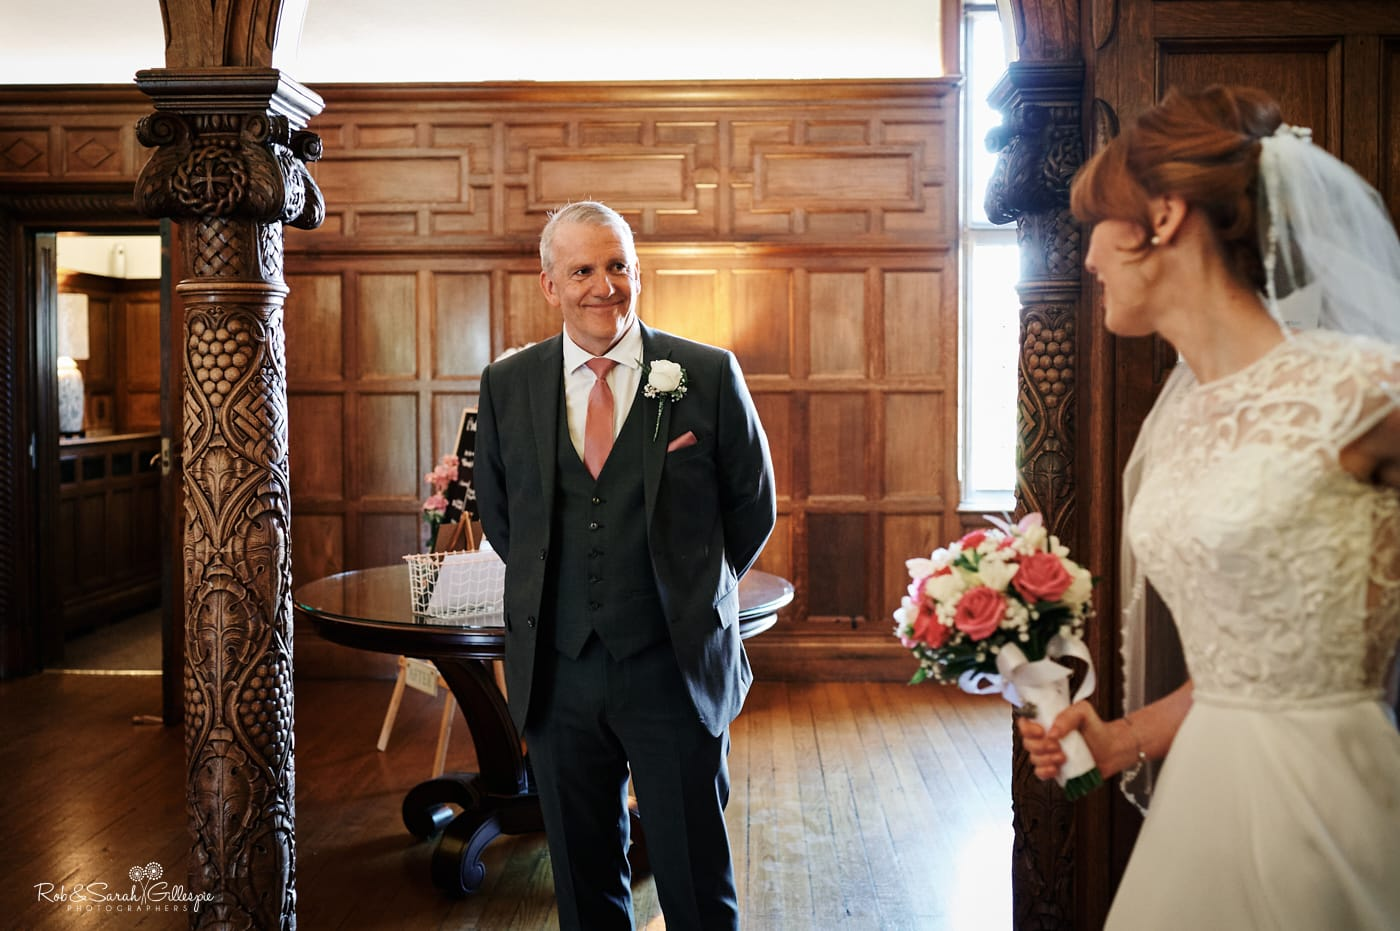 Dad sees daughter in wedding dress in beautiful hall